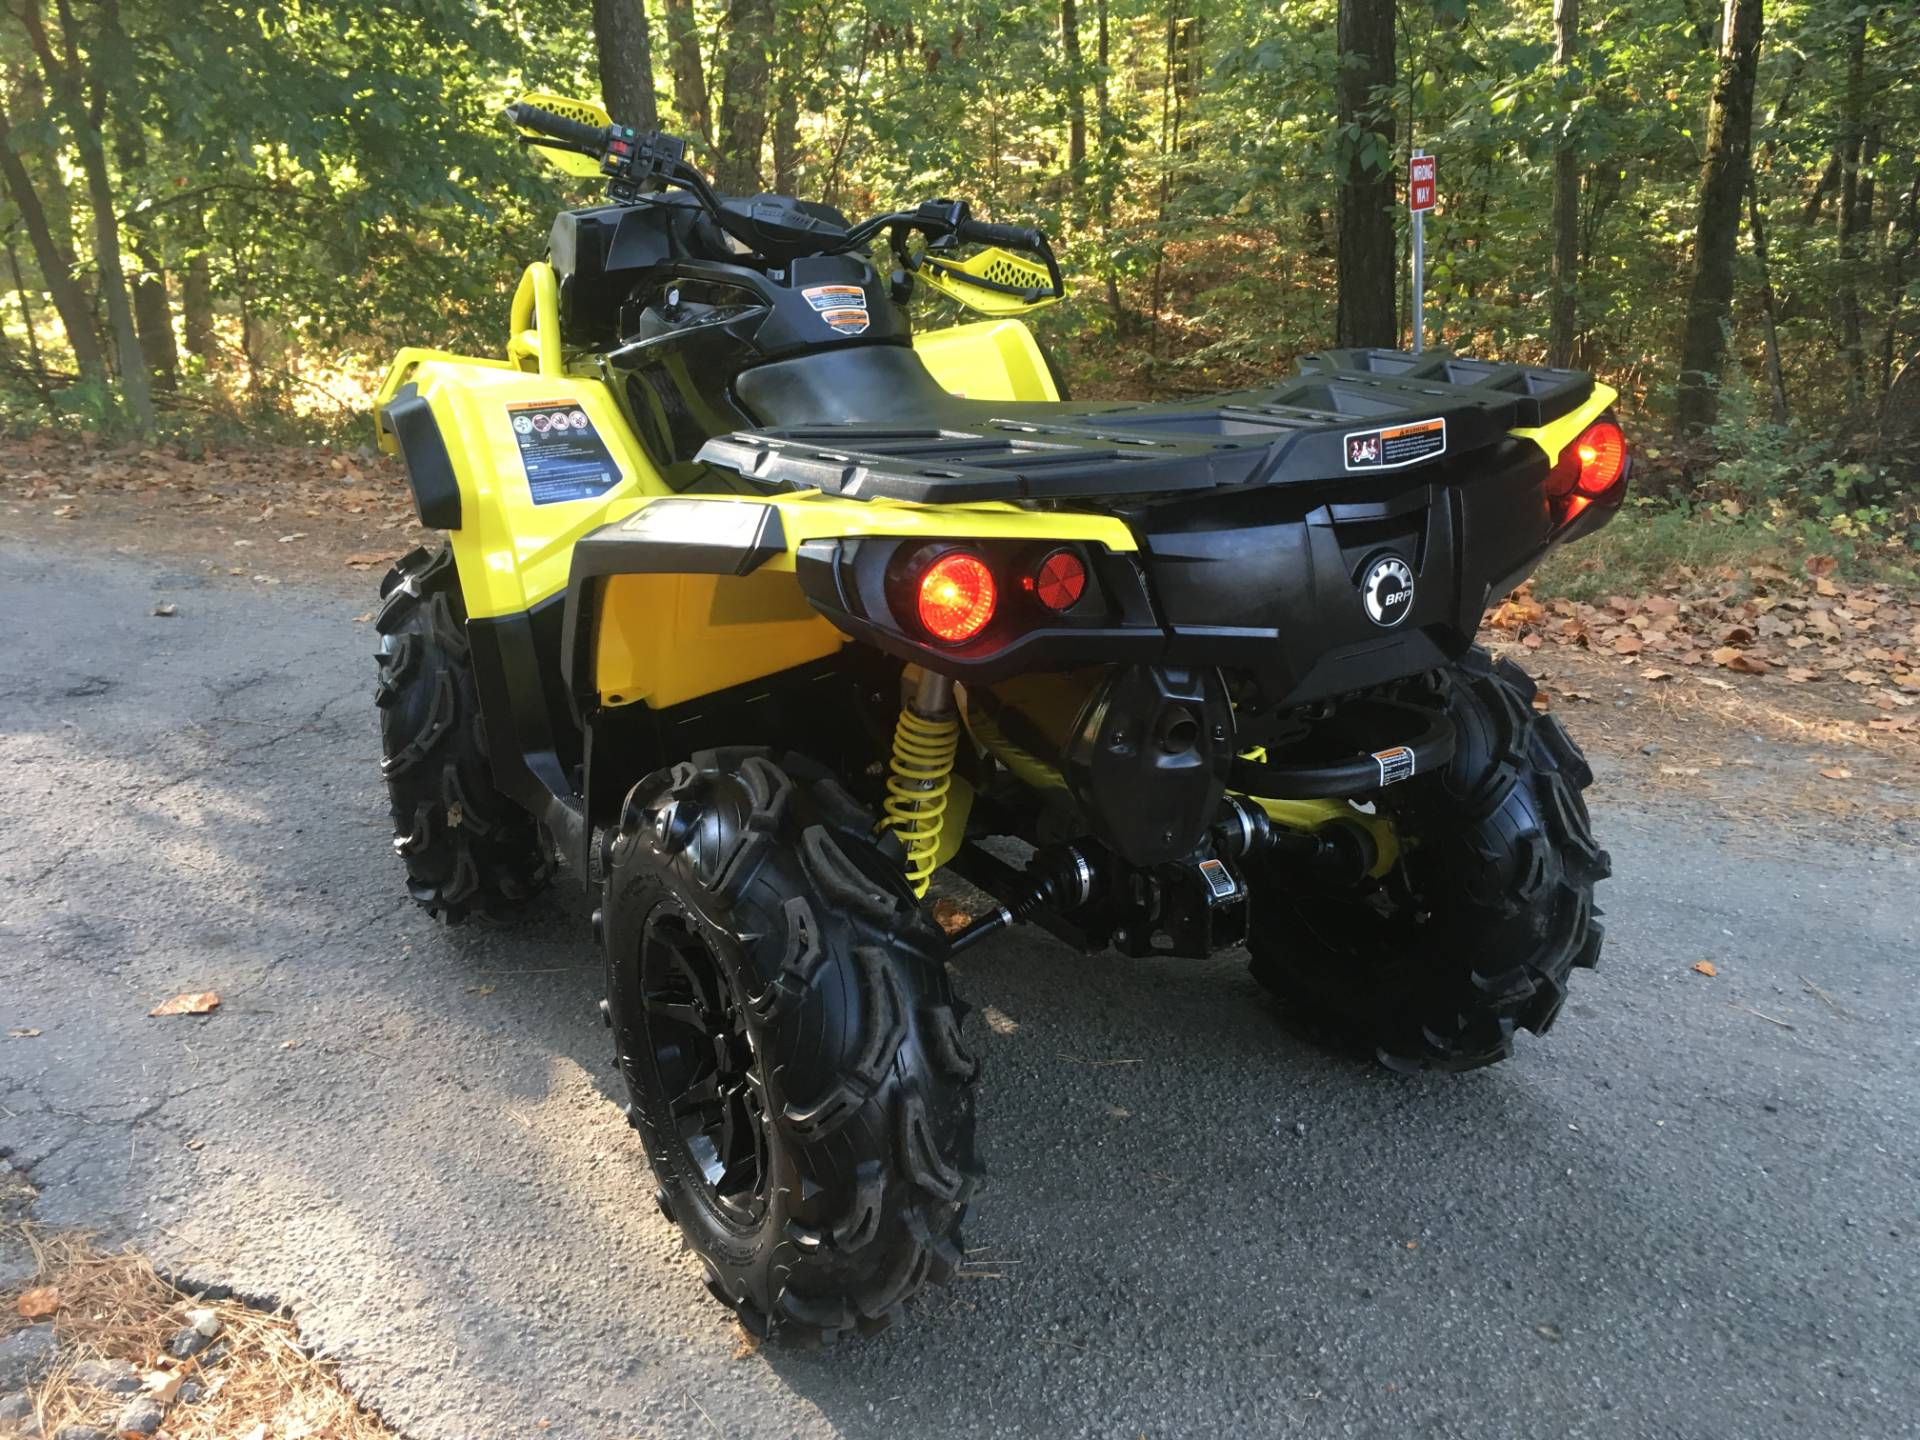 2019 CAN-AM OUTLANDER XT-P 850 in Woodstock, Georgia - Photo 3